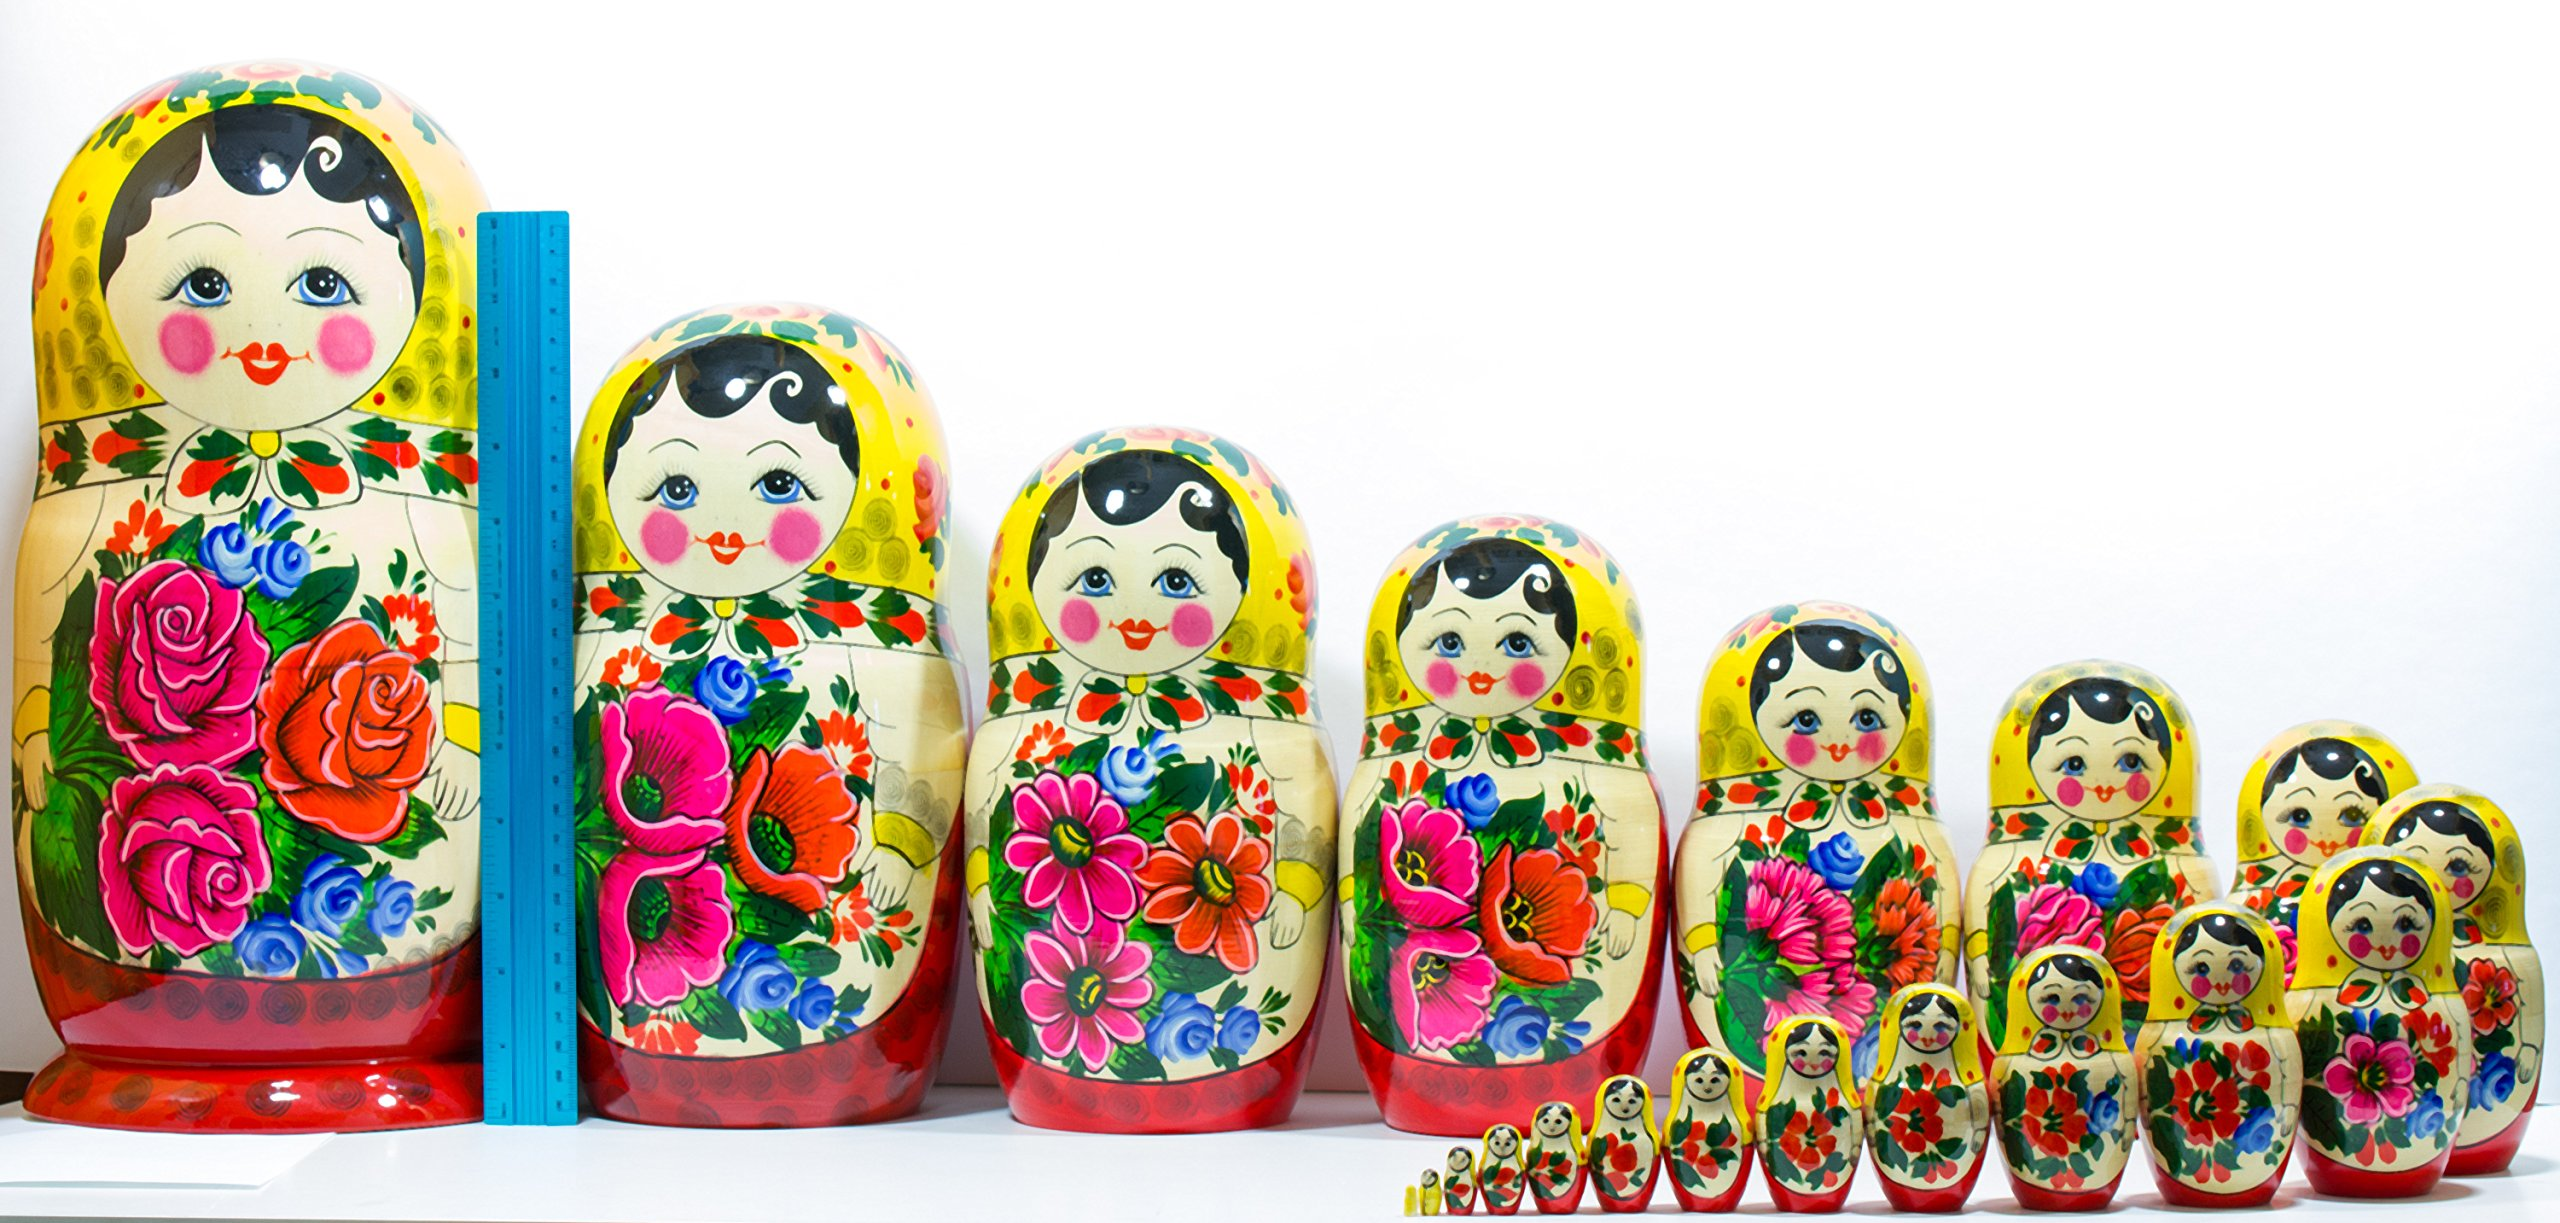 Russian Nesting Doll -Semenovo - Hand Painted in Russia - 6 Color|Size Variations - Wooden Decoration Gift Doll - Traditional Matryoshka Babushka (14``(20 Dolls in 1), Yellow - Red) by craftsfromrussia (Image #5)